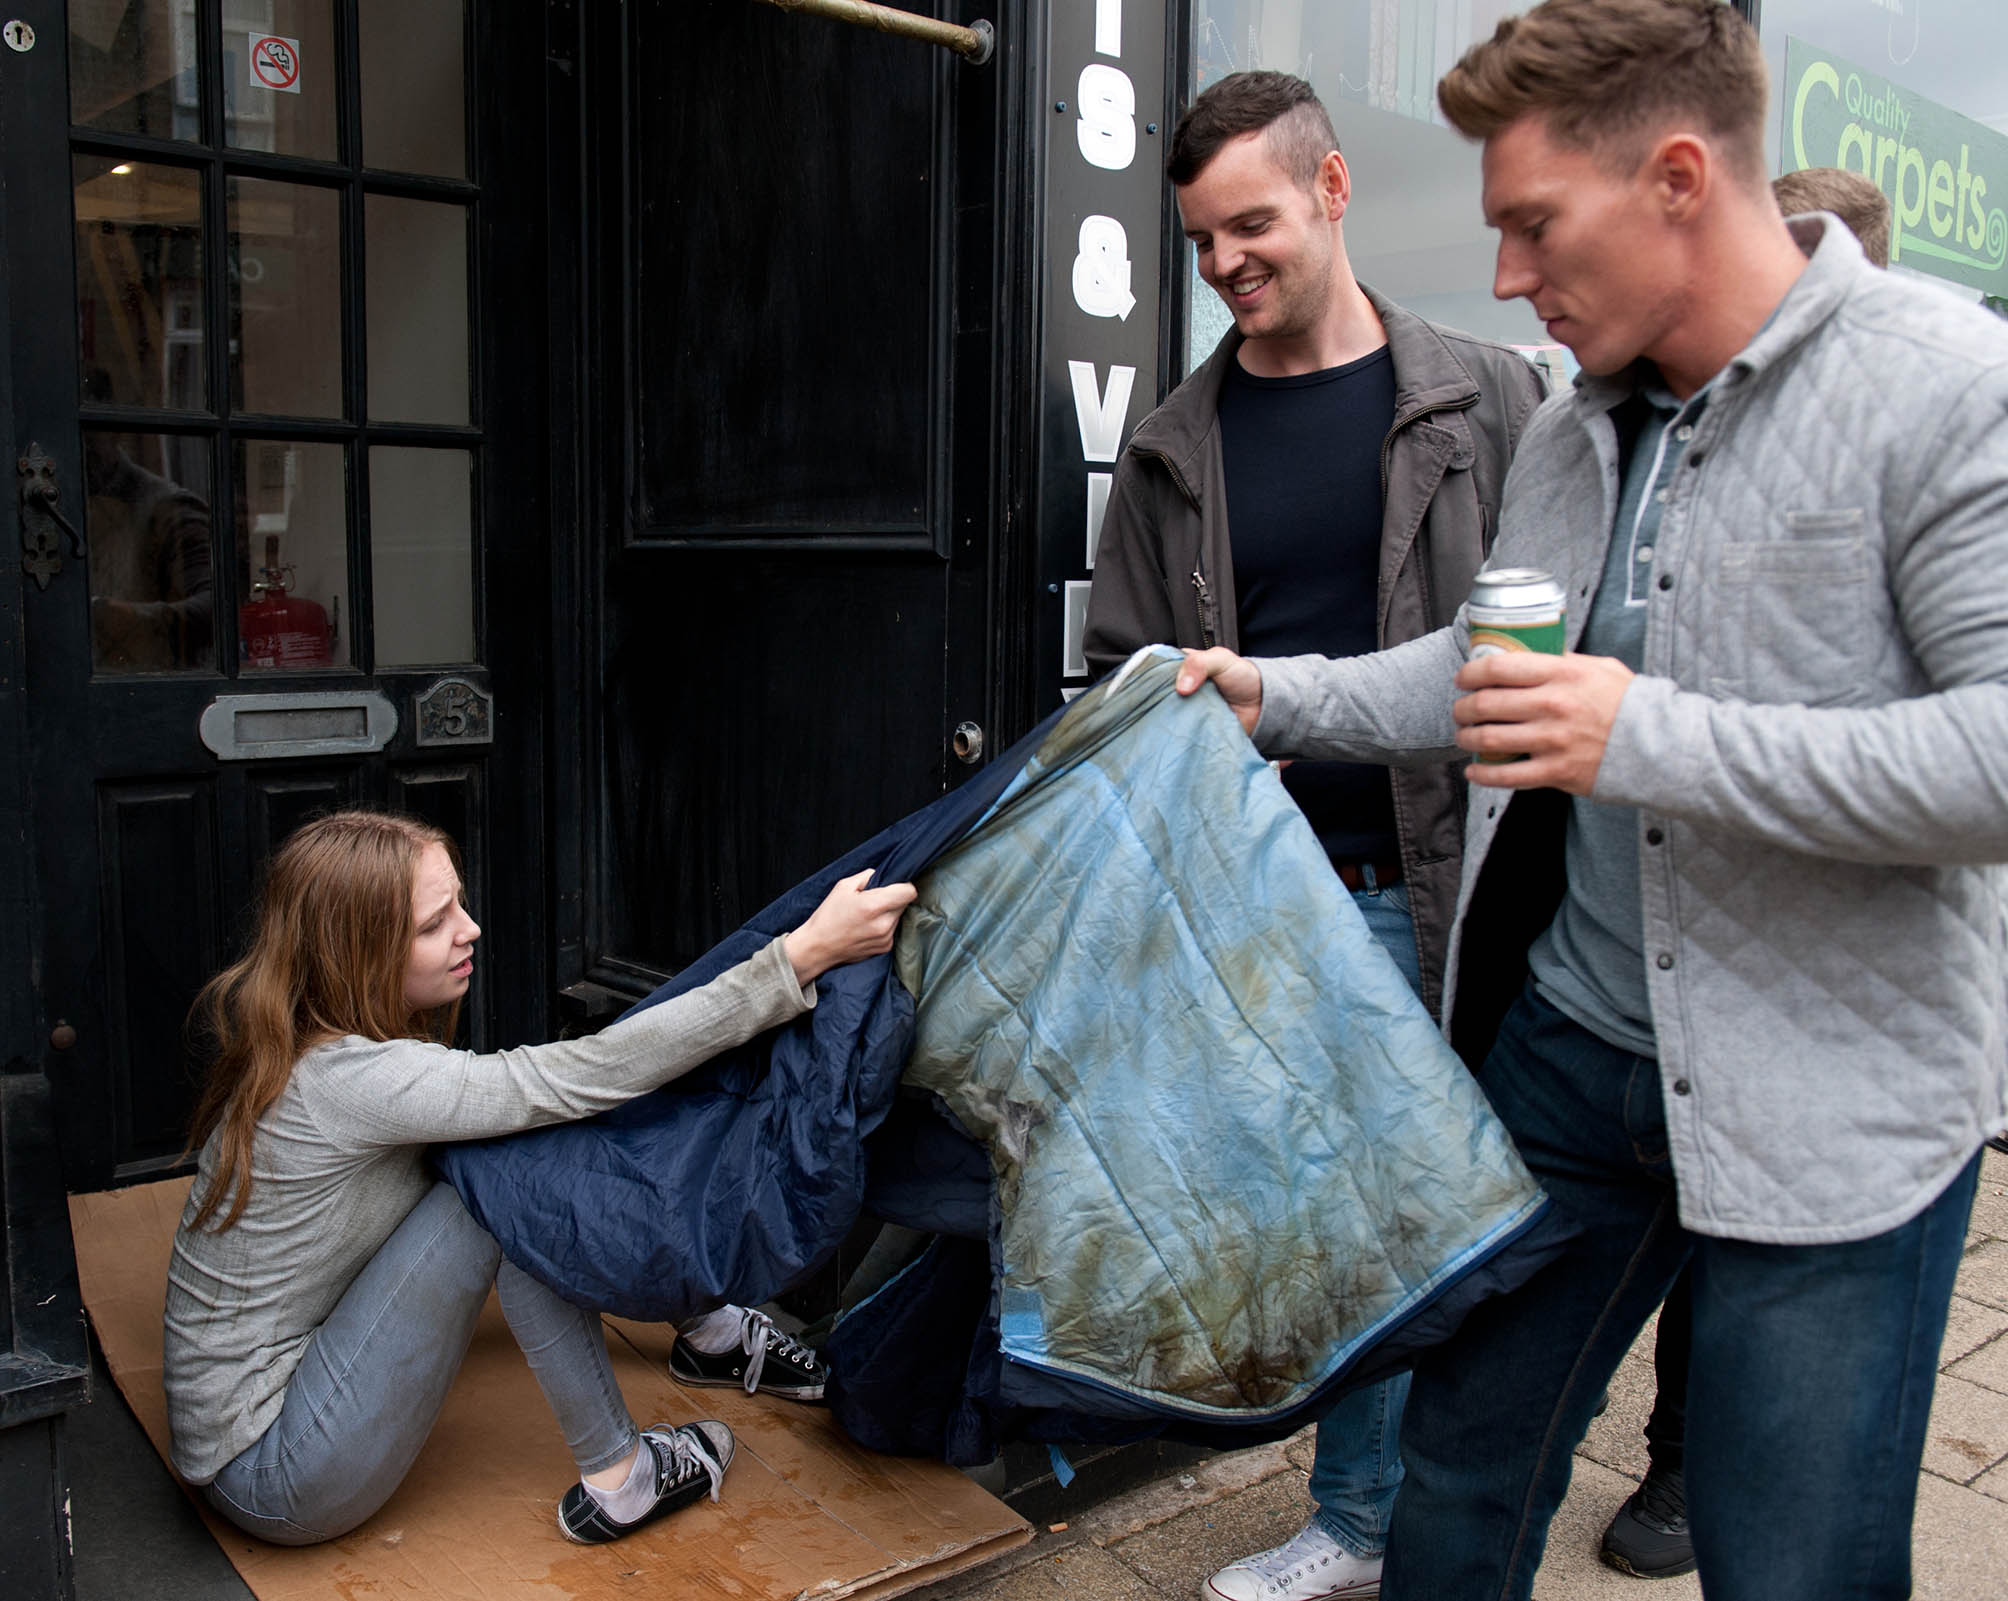 FROM ITV STRICT EMBARGO - NO USE BEFORE TUESDAY 30 AUGUST 2016 Emmerdale - Ep 7611 Thursday 8th September 2016 - 2nd Ep After picking through scraps outside a fast food place a desperate Belle Dingle [EDEN TAYLOR-DRAPER] huddles down to sleep. Some revelers steal her sleeping bag, leaving her unprotected against the cold. Picture contact: david.crook@itv.com on 0161 952 6214 Photographer - Amy Brammall This photograph is (C) ITV Plc and can only be reproduced for editorial purposes directly in connection with the programme or event mentioned above, or ITV plc. Once made available by ITV plc Picture Desk, this photograph can be reproduced once only up until the transmission [TX] date and no reproduction fee will be charged. Any subsequent usage may incur a fee. This photograph must not be manipulated [excluding basic cropping] in a manner which alters the visual appearance of the person photographed deemed detrimental or inappropriate by ITV plc Picture Desk. This photograph must not be syndicated to any other company, publication or website, or permanently archived, without the express written permission of ITV Plc Picture Desk. Full Terms and conditions are available on the website www.itvpictures.com